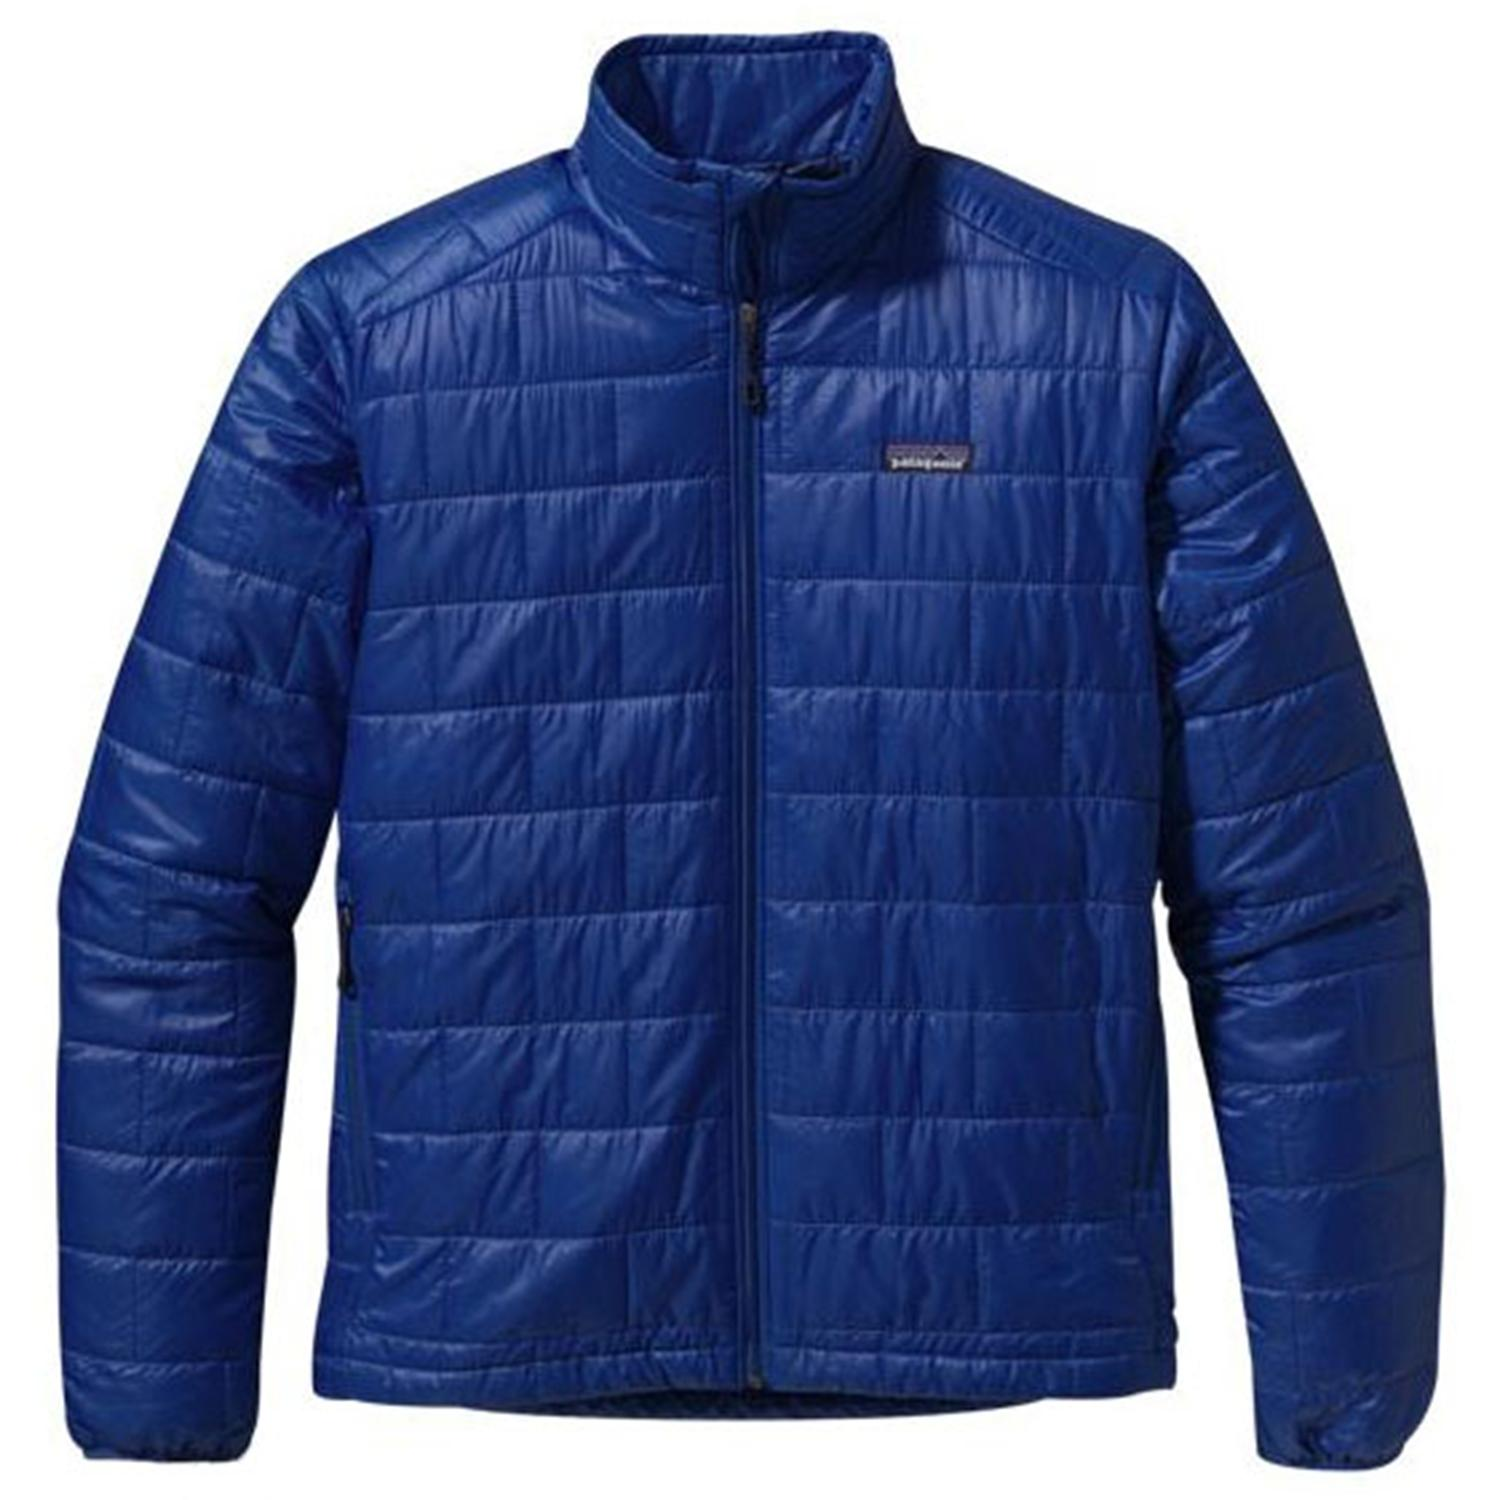 patagonia sale patagonia lowest price guarantee customer care need